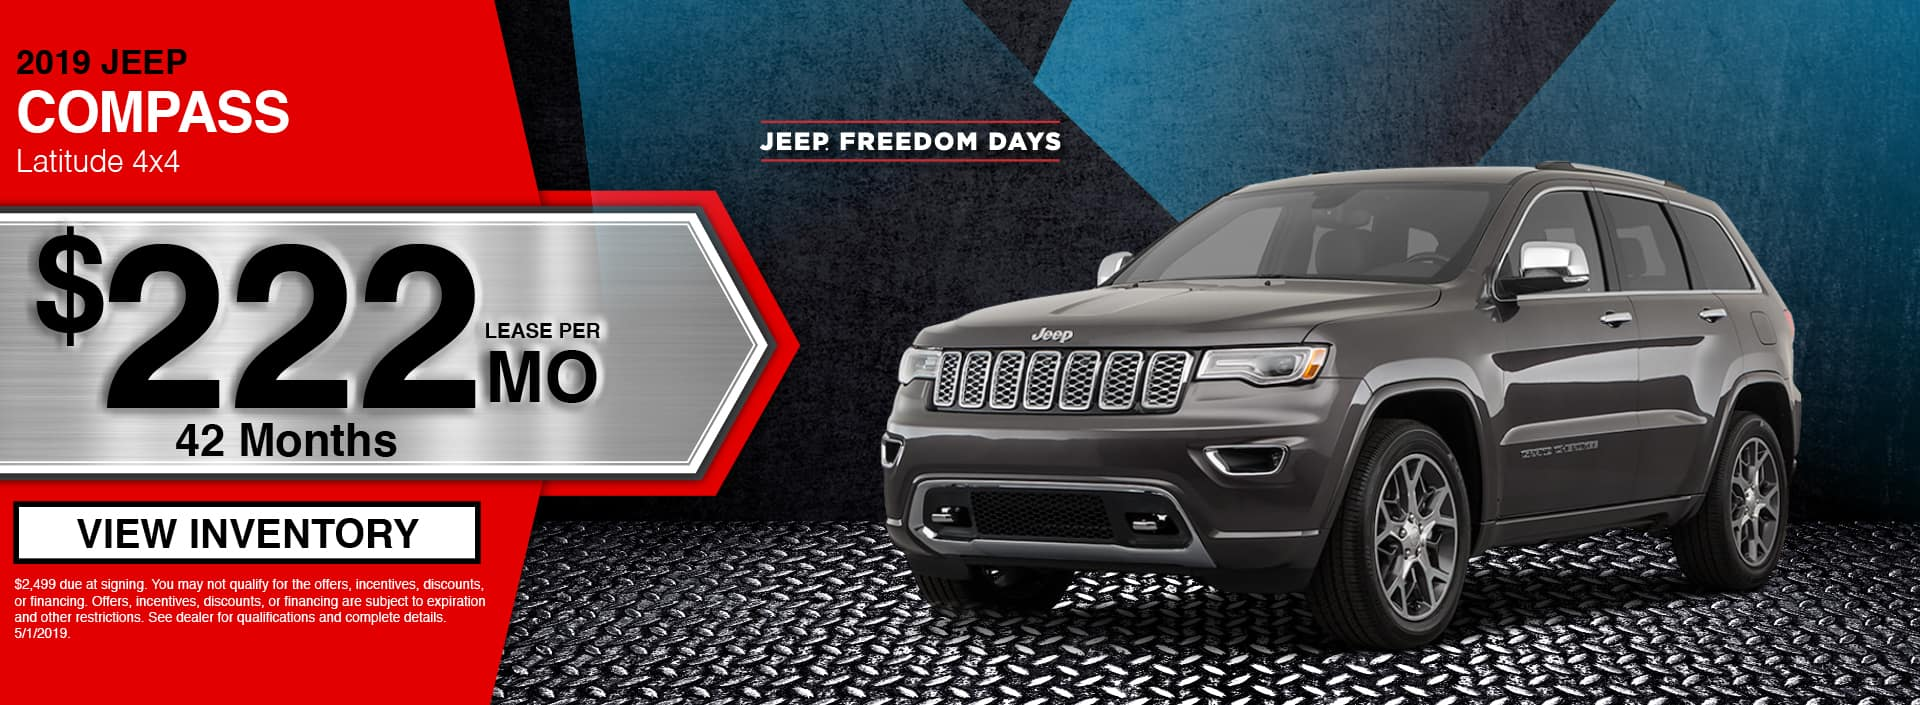 2019 Jeep Compass Latitude Special in Waseca, MN